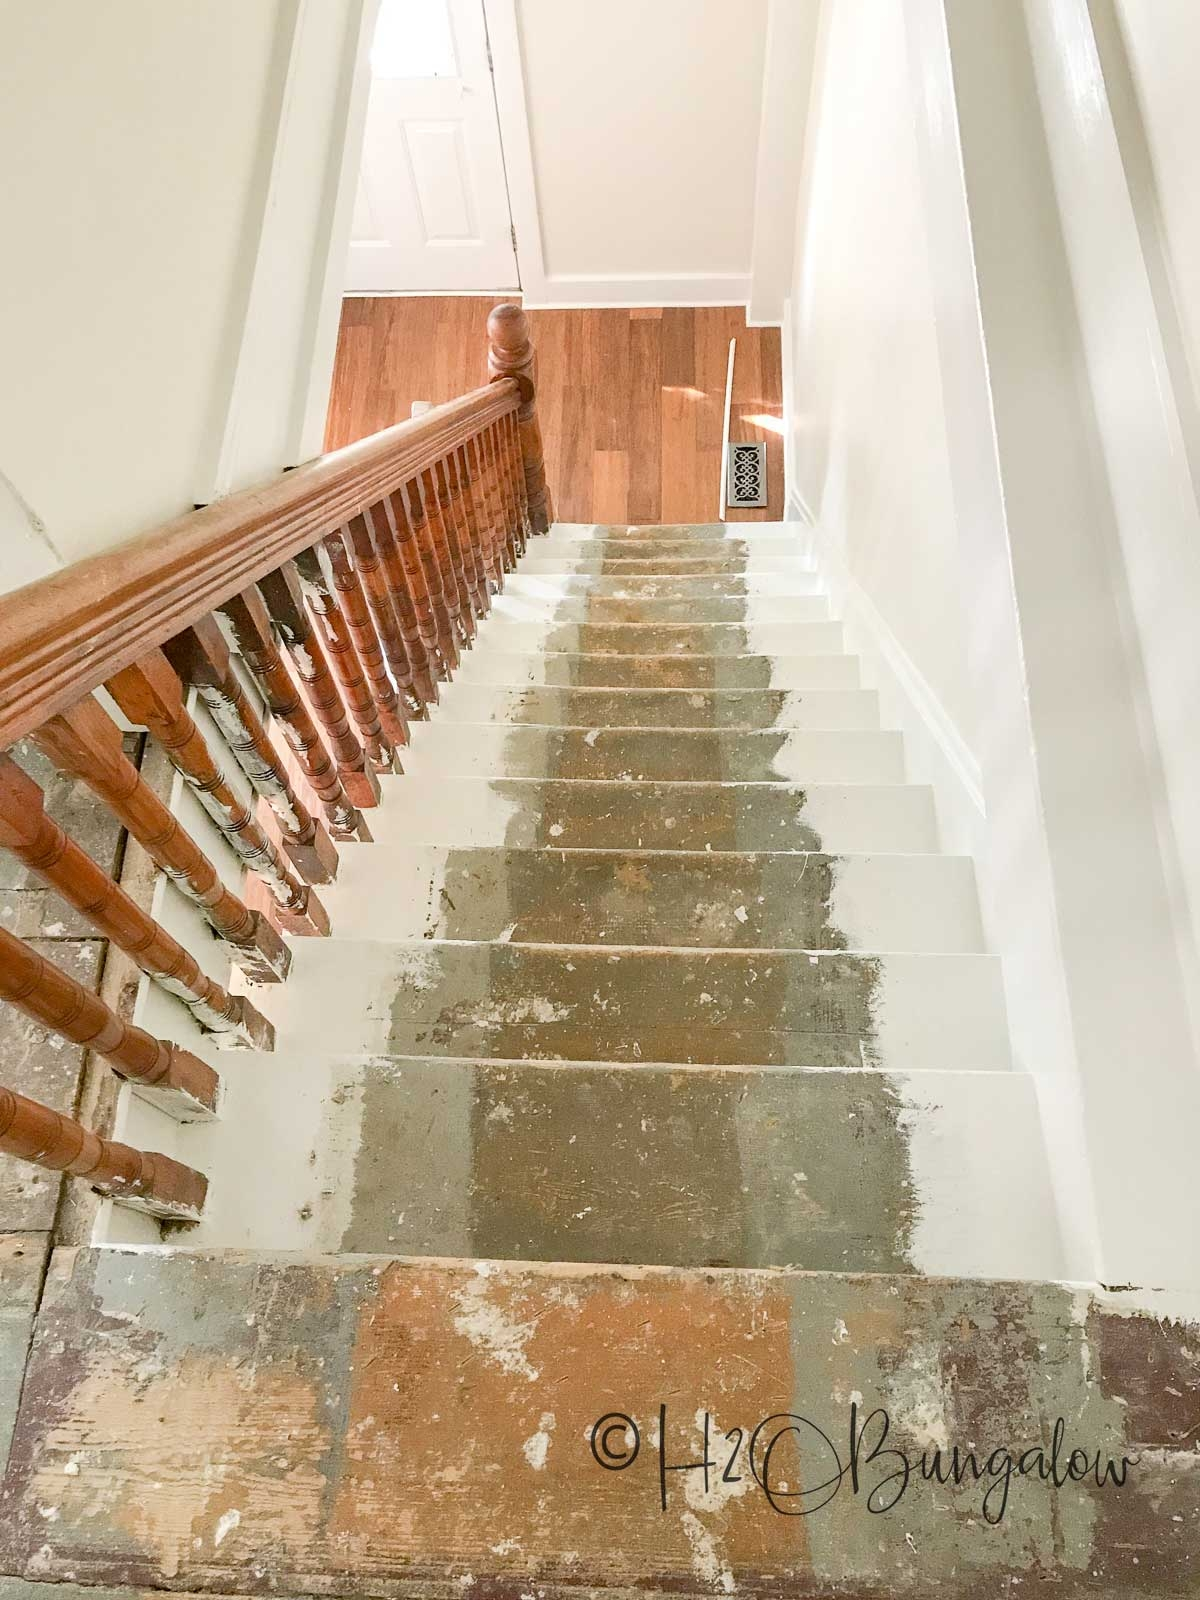 How To Install Carpet Runner On Stairs H2Obungalow | Carpet Runners For Stairs | Brown | Herringbone | Blue | Design | Wool